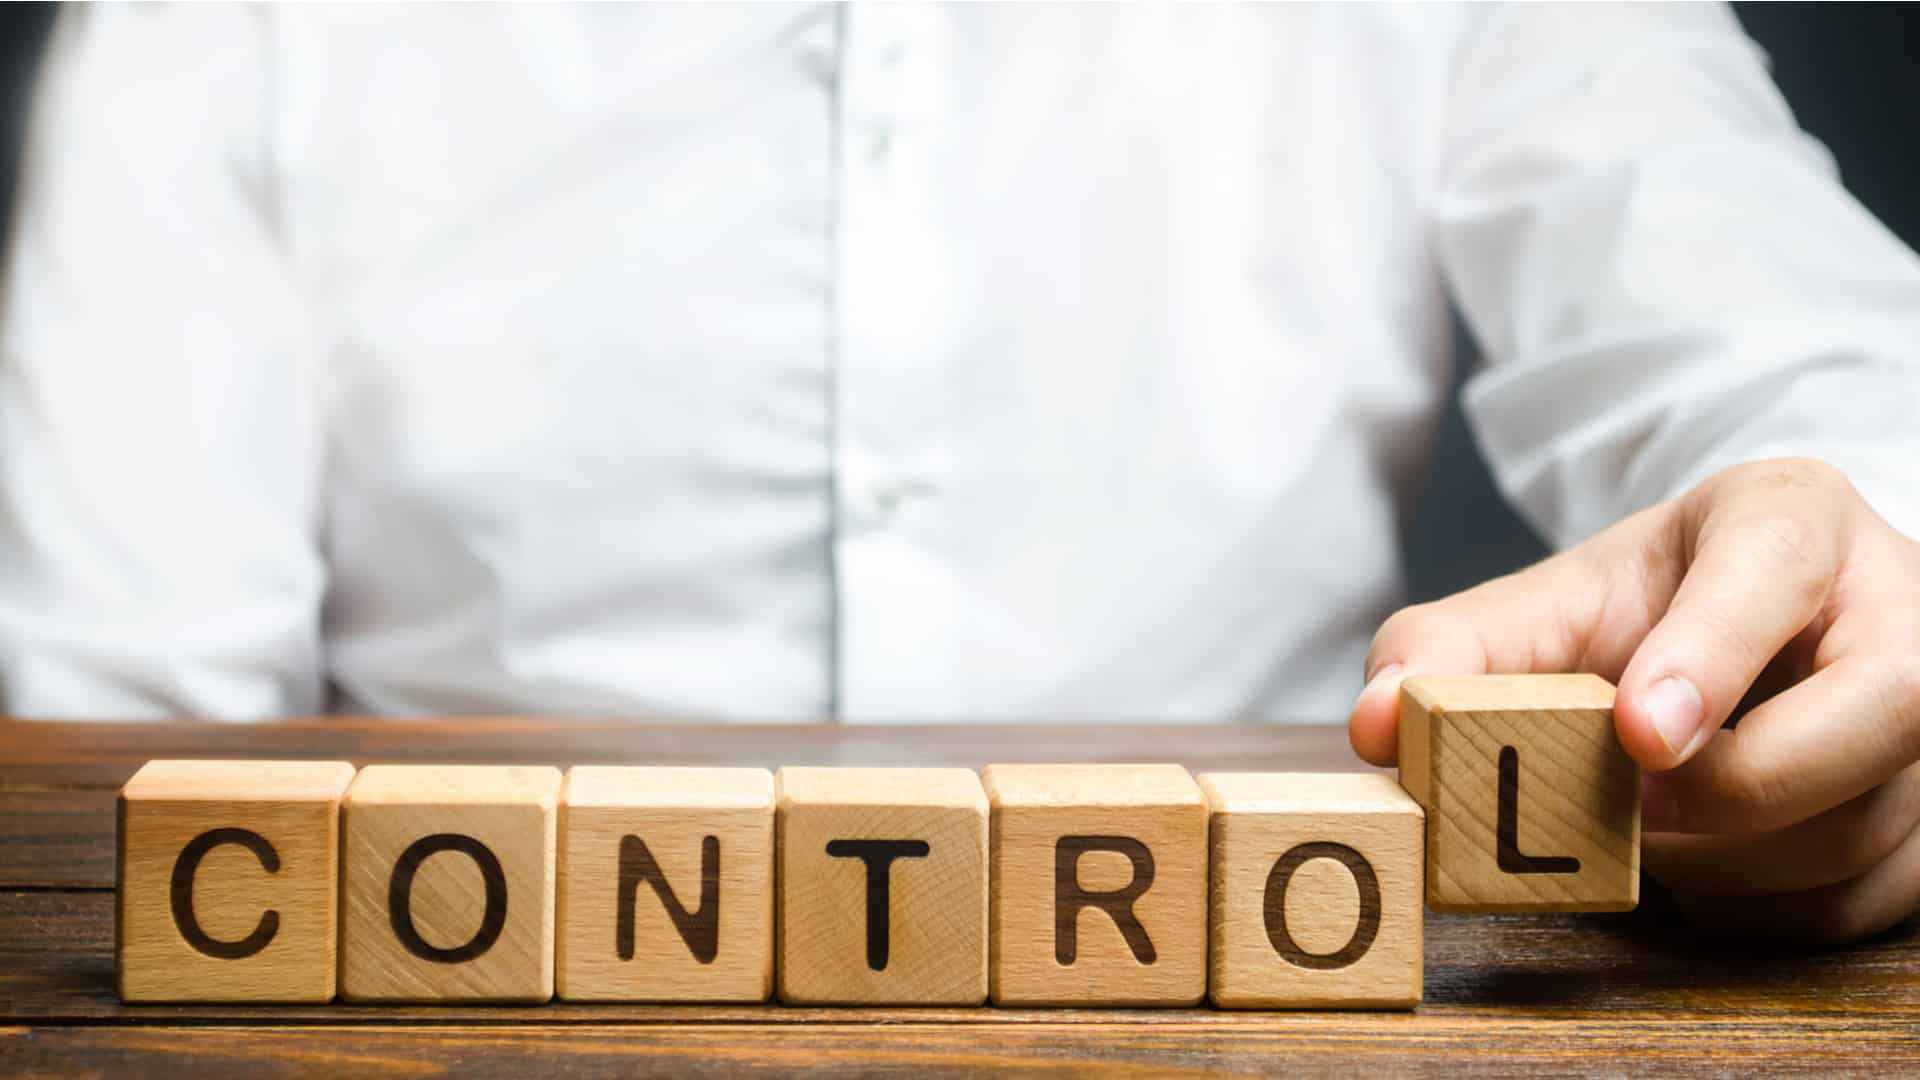 The Power of Control